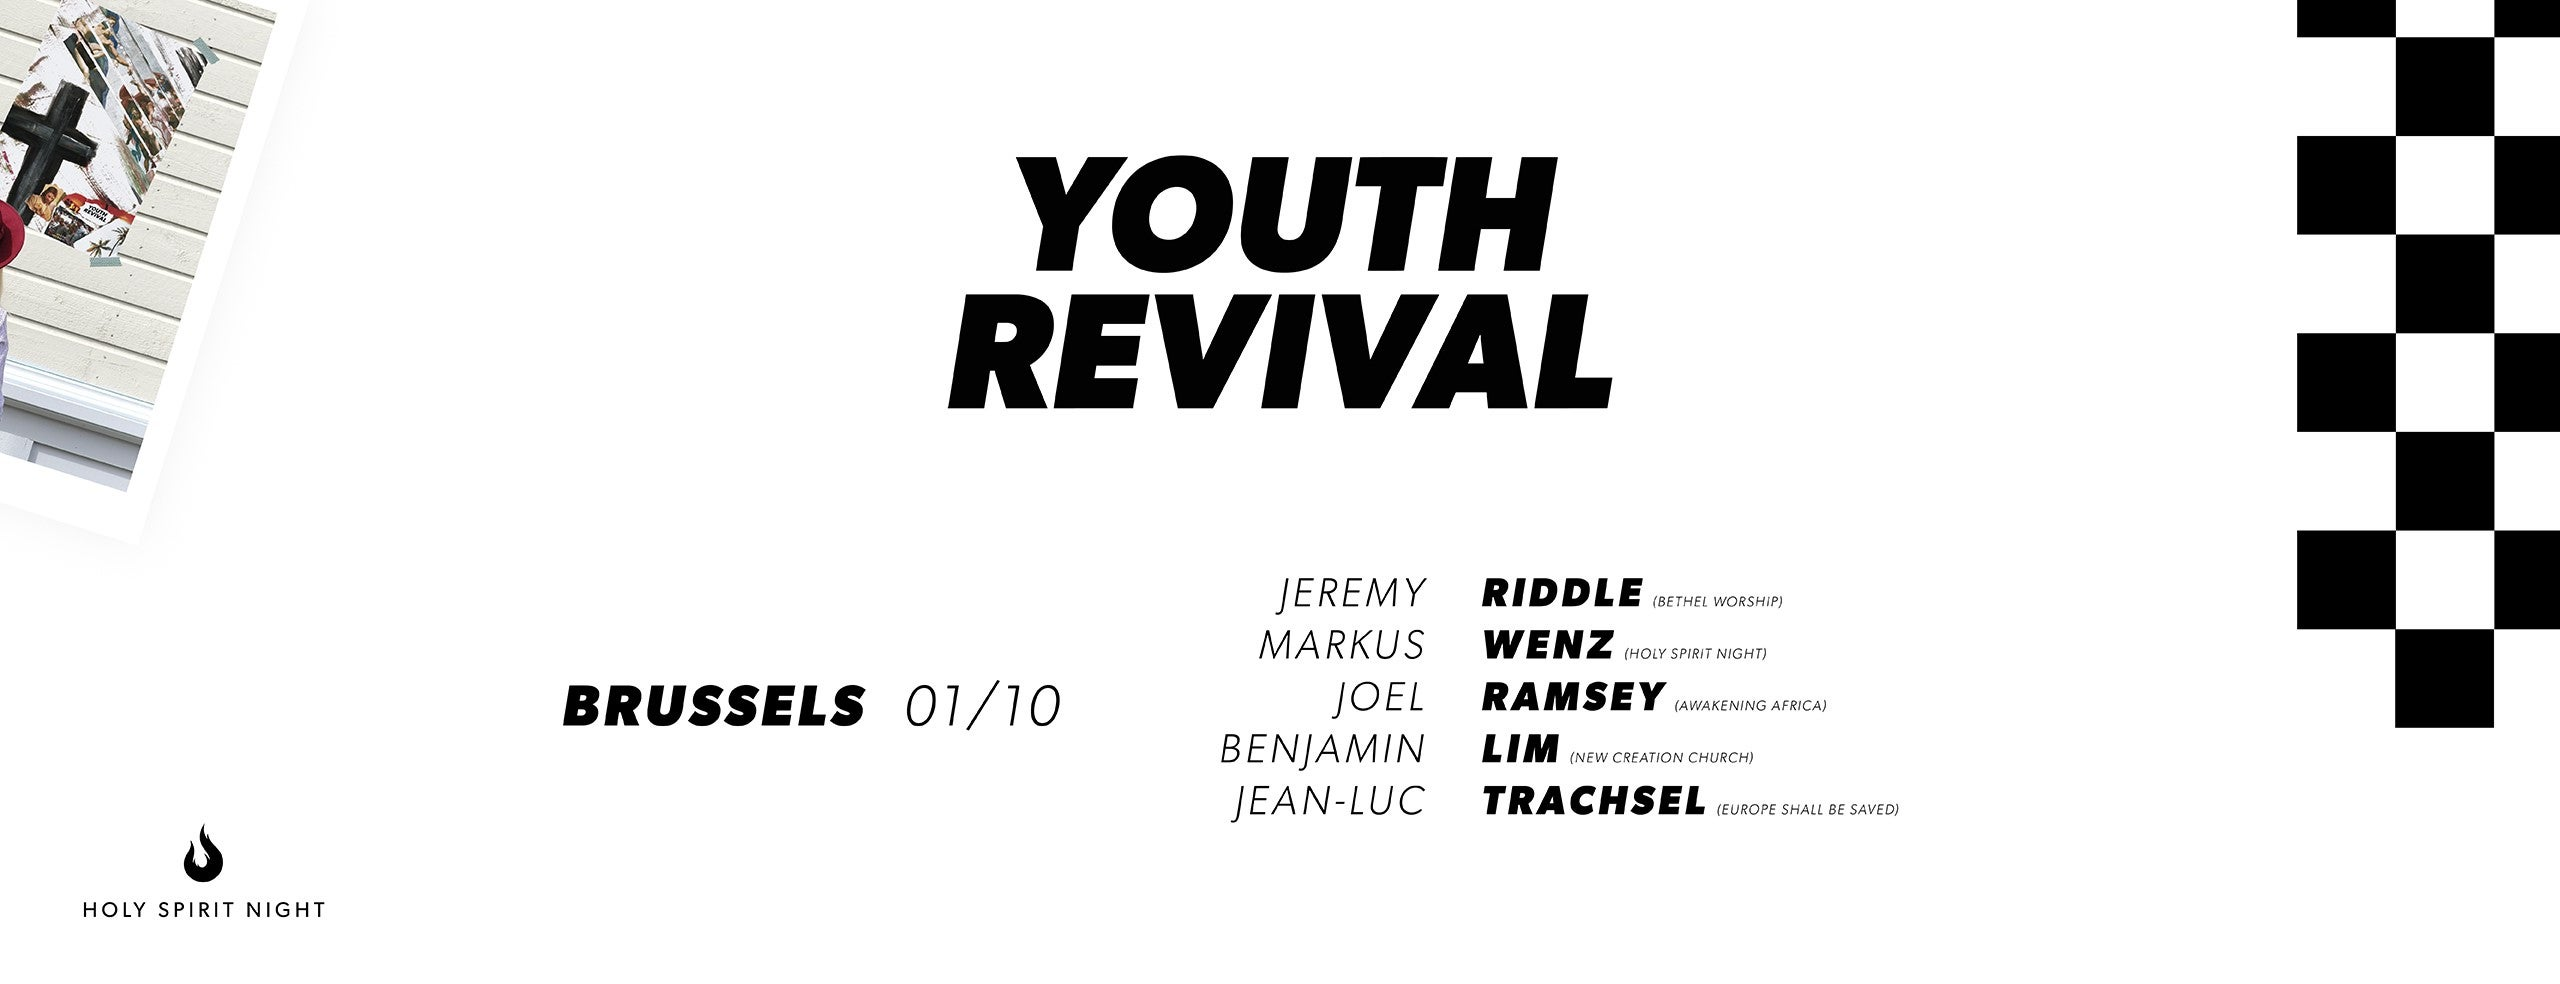 Youth Revival - Big.jpg